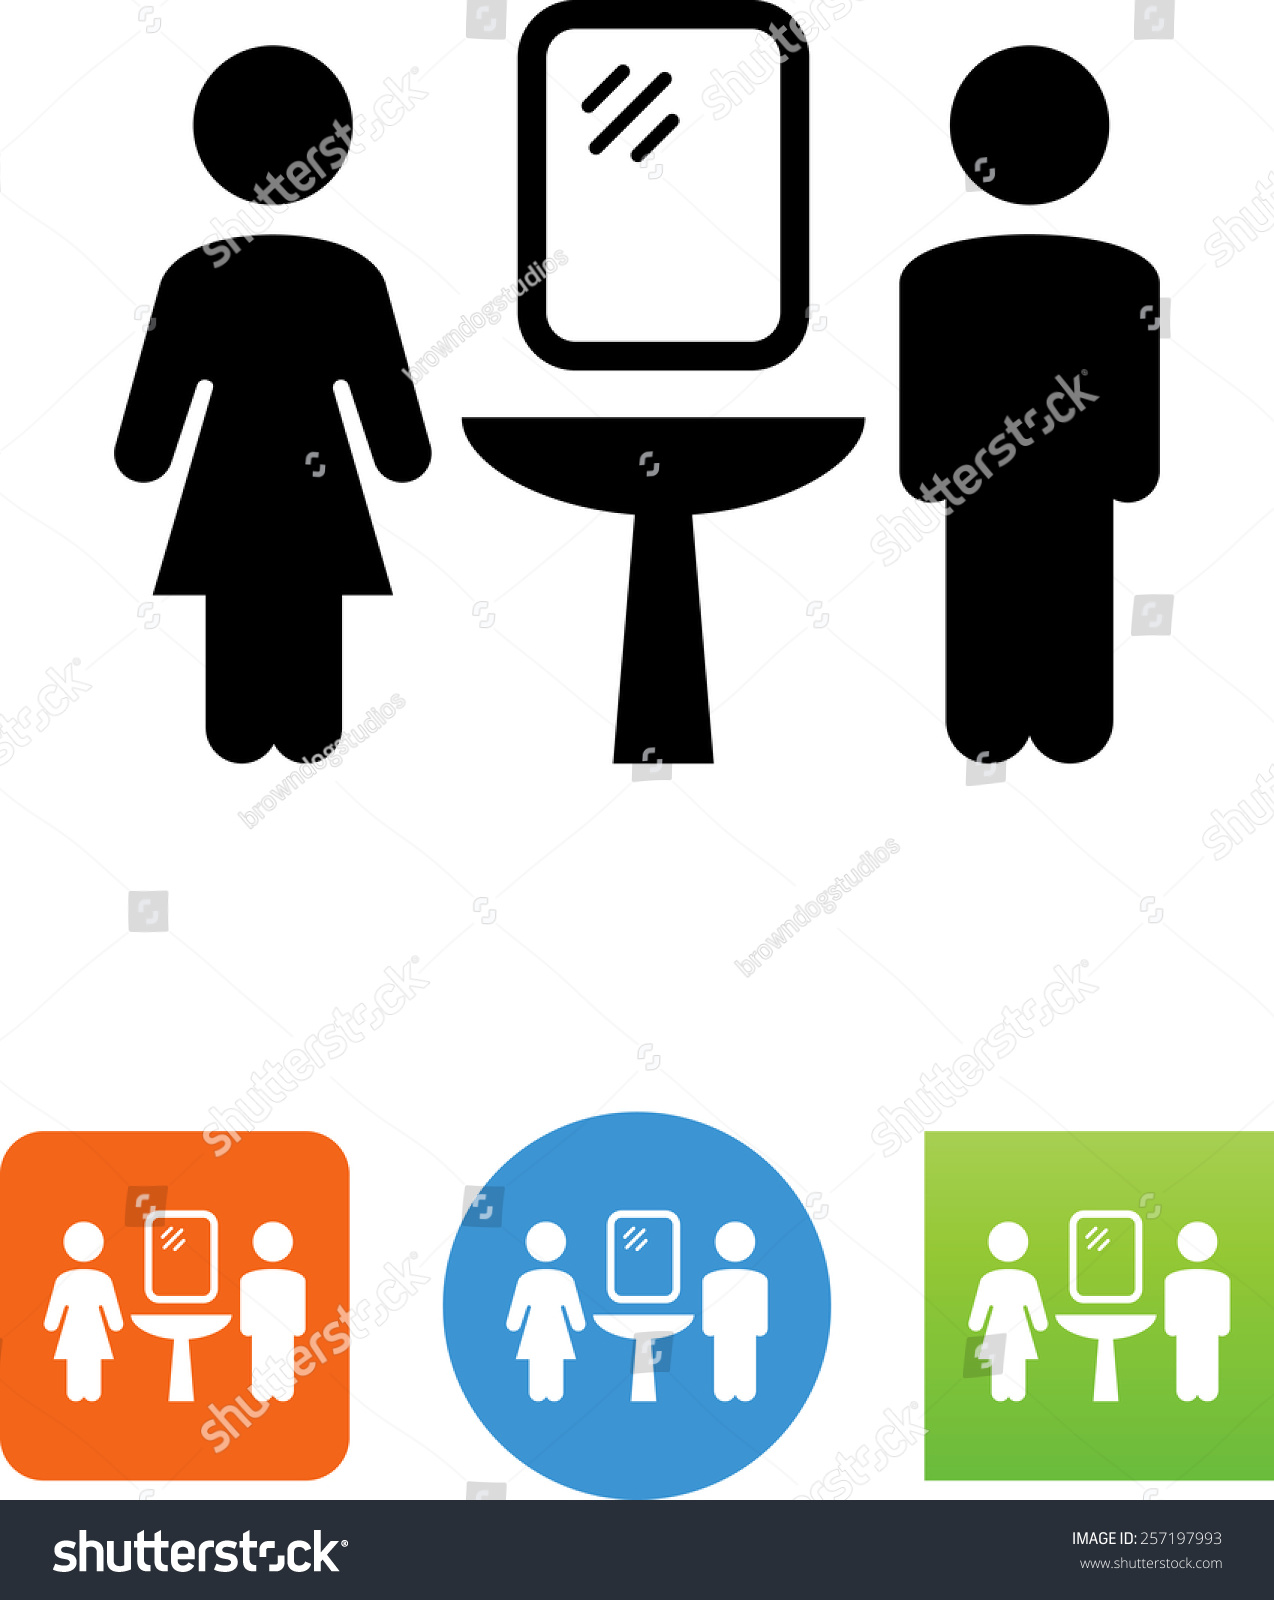 men s bathroom sign vector. Men\u0027s And Women\u0027s Bathroom Symbol. Vector Icons For Video, Mobile Apps, Web Sites Men S Sign